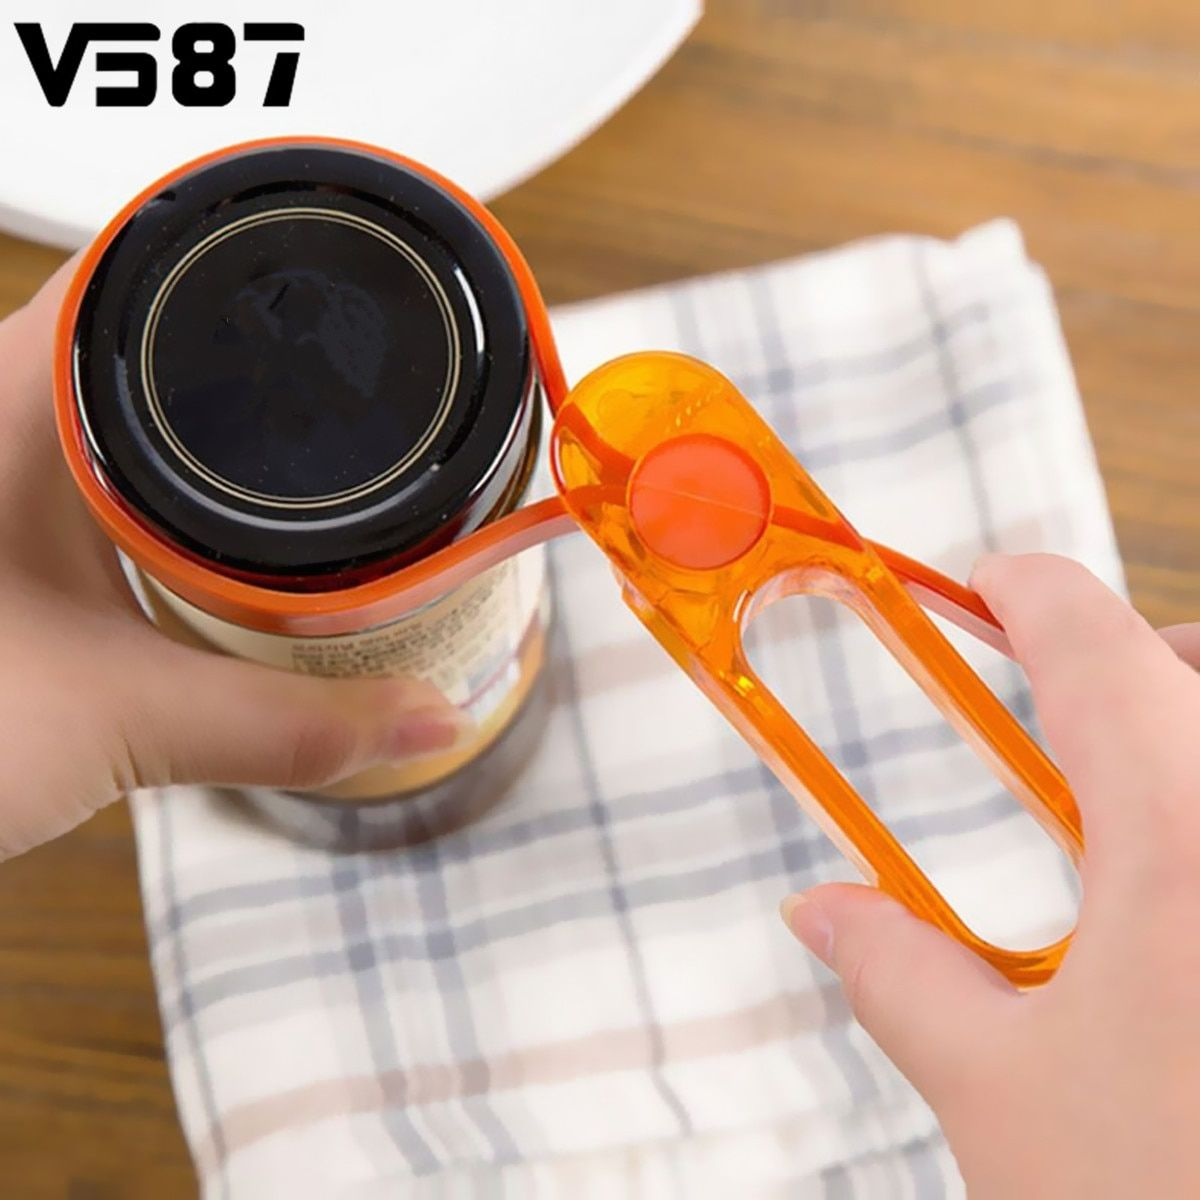 Multipupose Adjustable Rubber Strap Jar Bottle Can Opener Resin Plastic Openers Wrench Practical Kitchen Tool Kitchenware